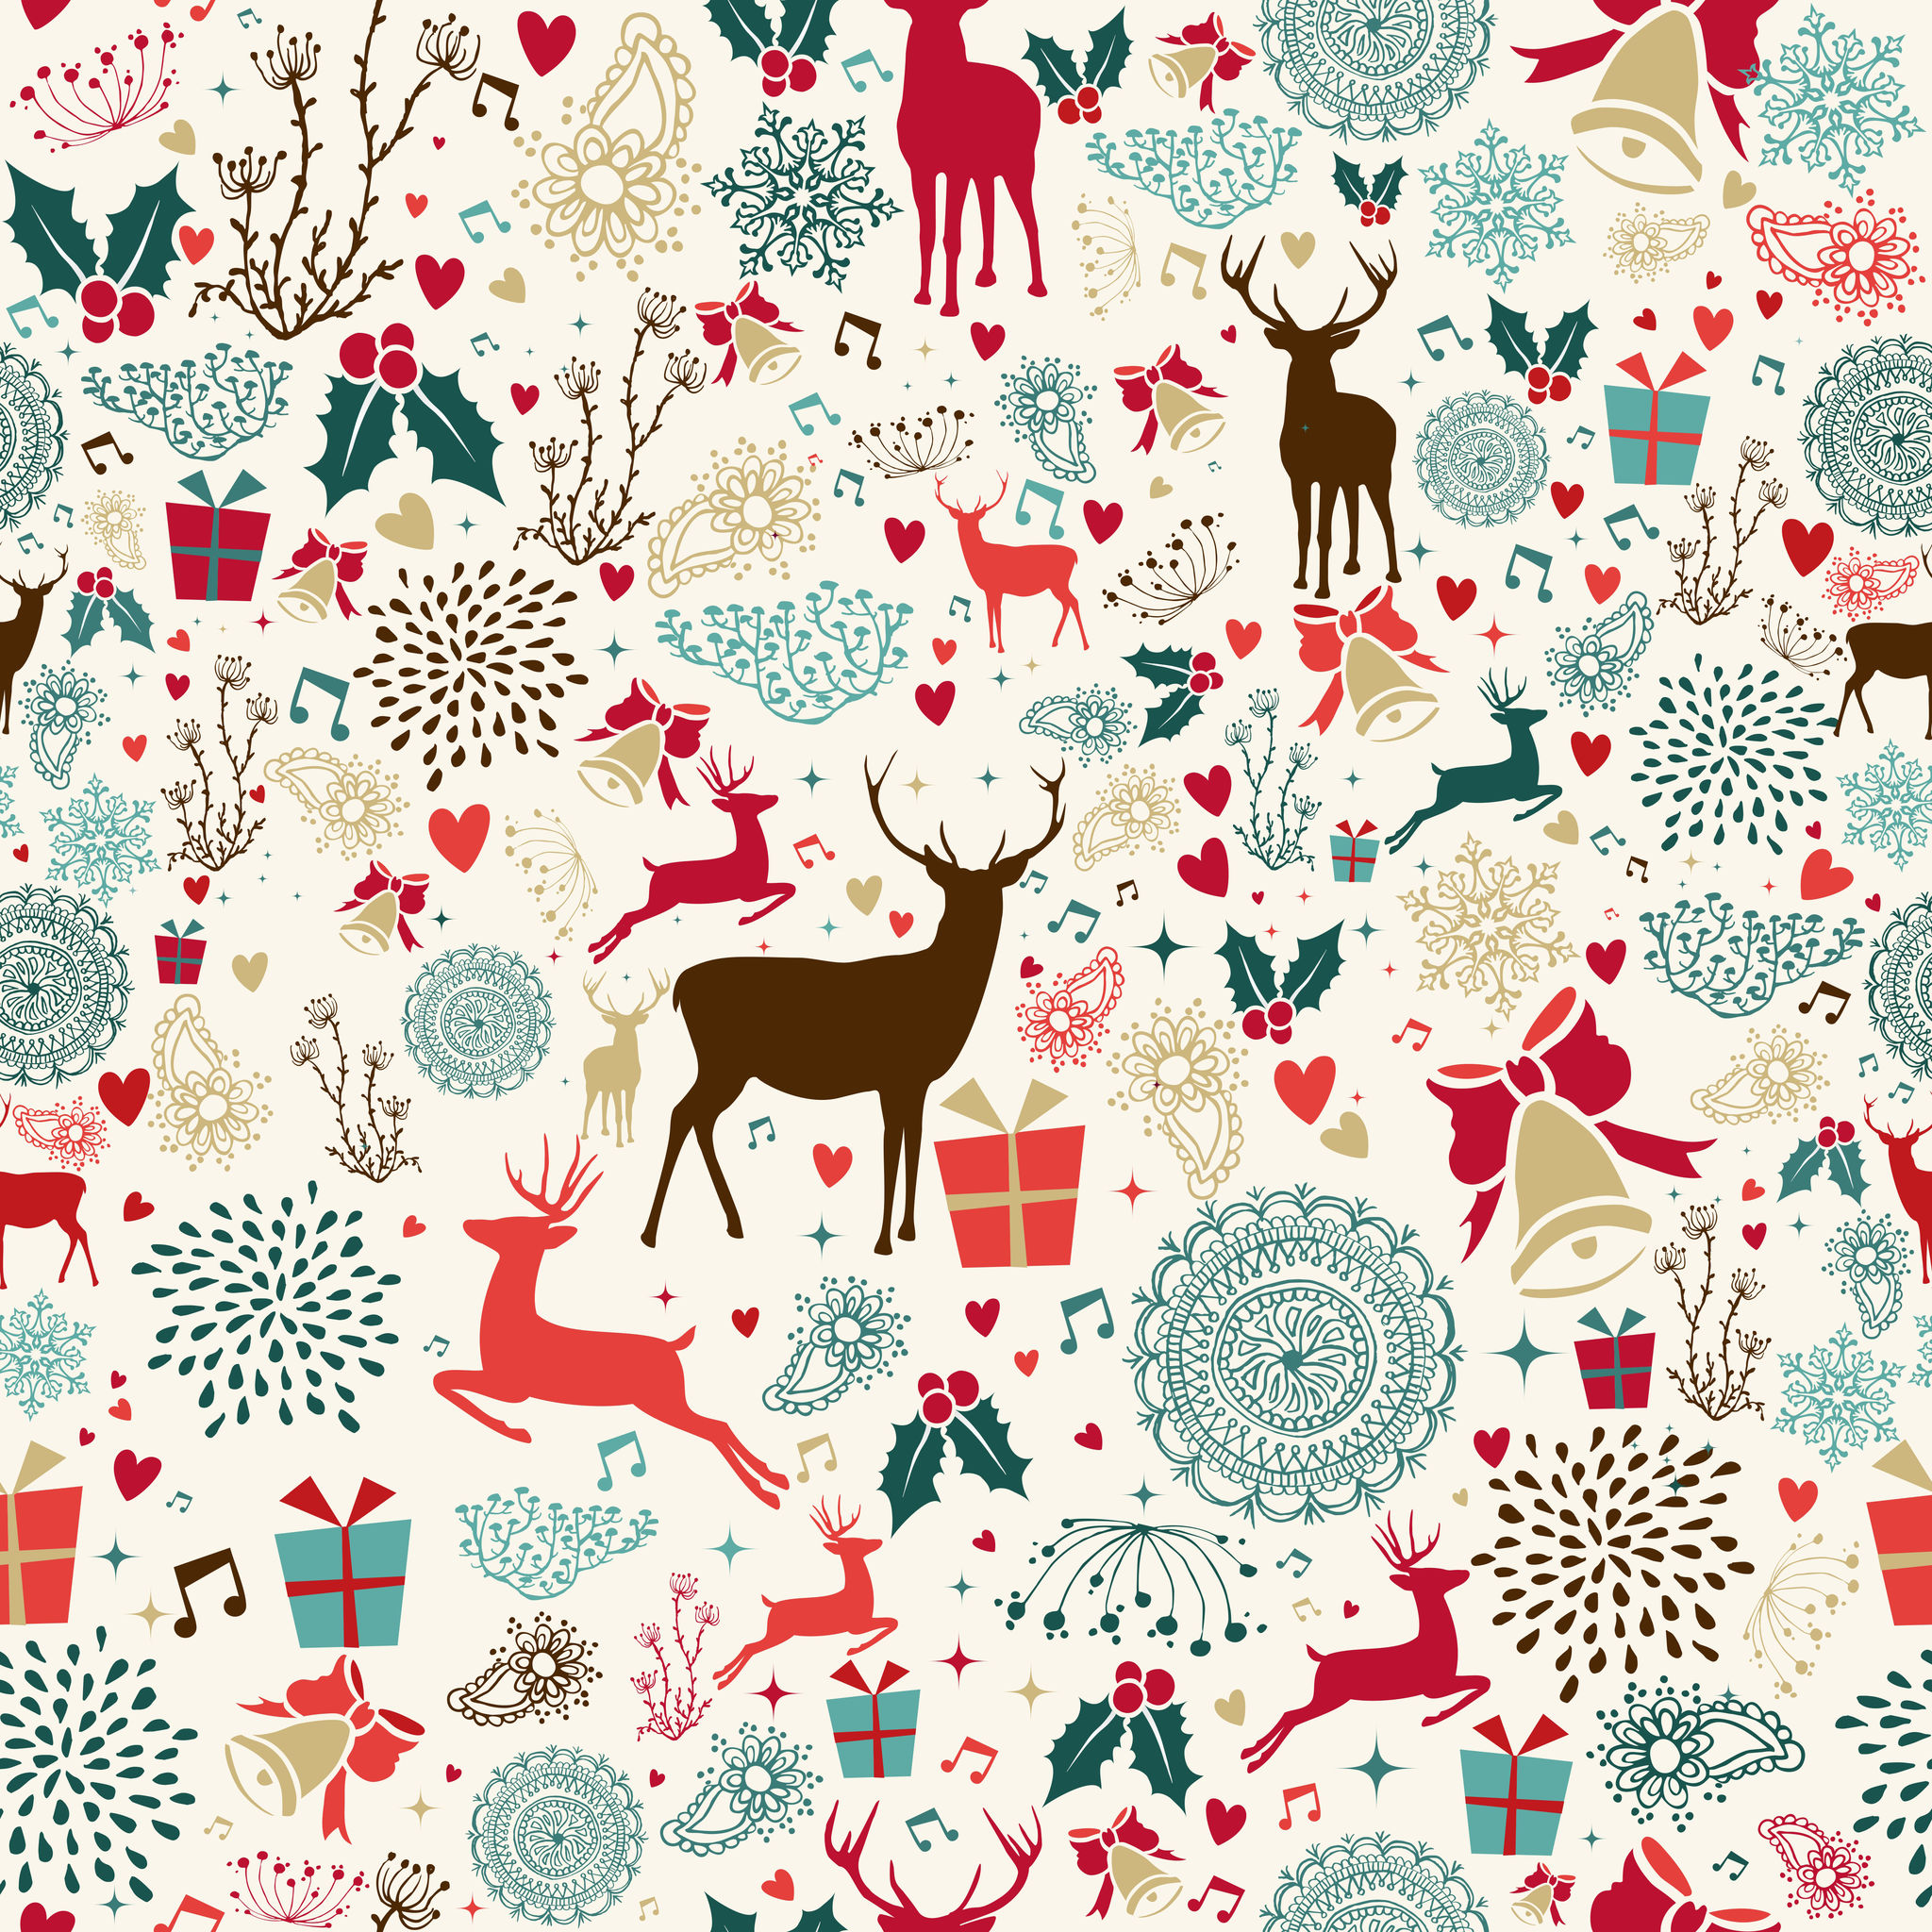 Dress up your birthday and holiday gifts with Hallmark gift wrap. Choose from wrapping paper, gift bags, bows, ribbons, tags and tissue to make your gifts shine.